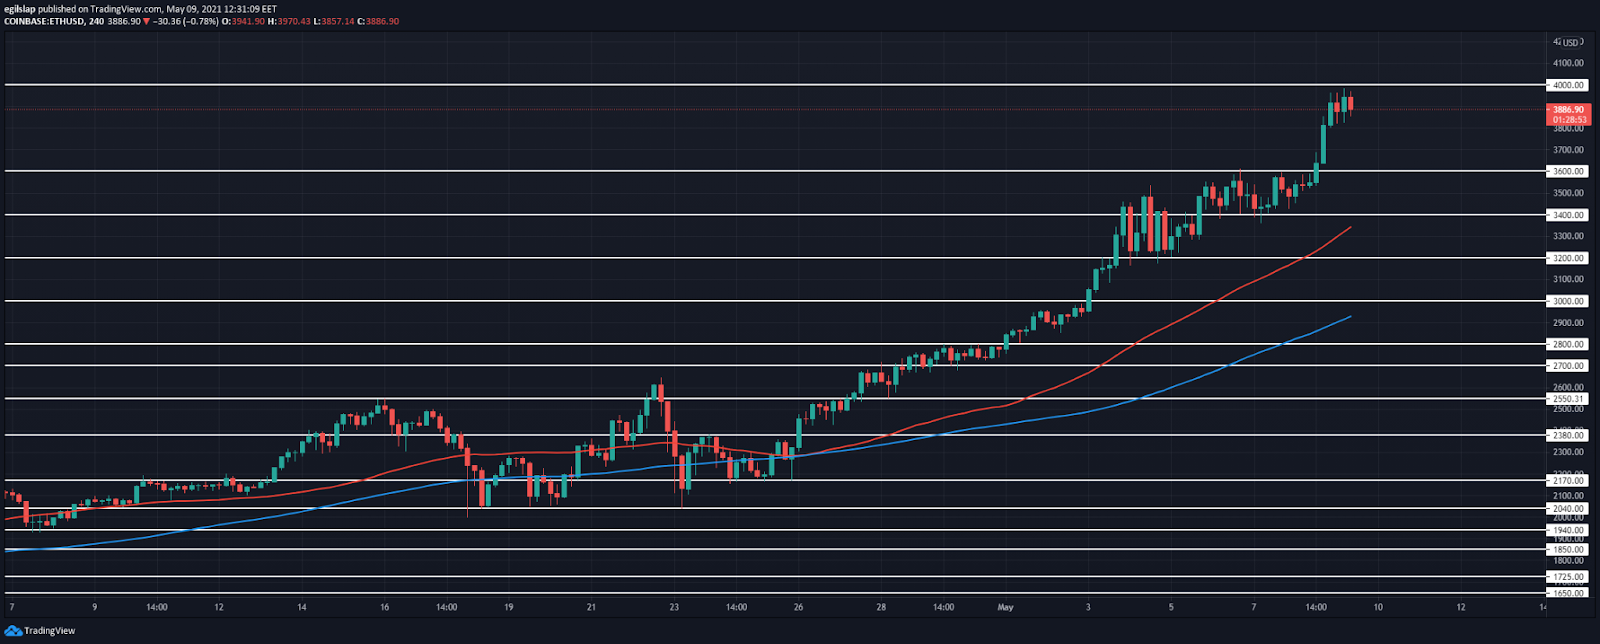 Ethereum price prediction: Ethereum reached $4,000, a retracement to follow? 2